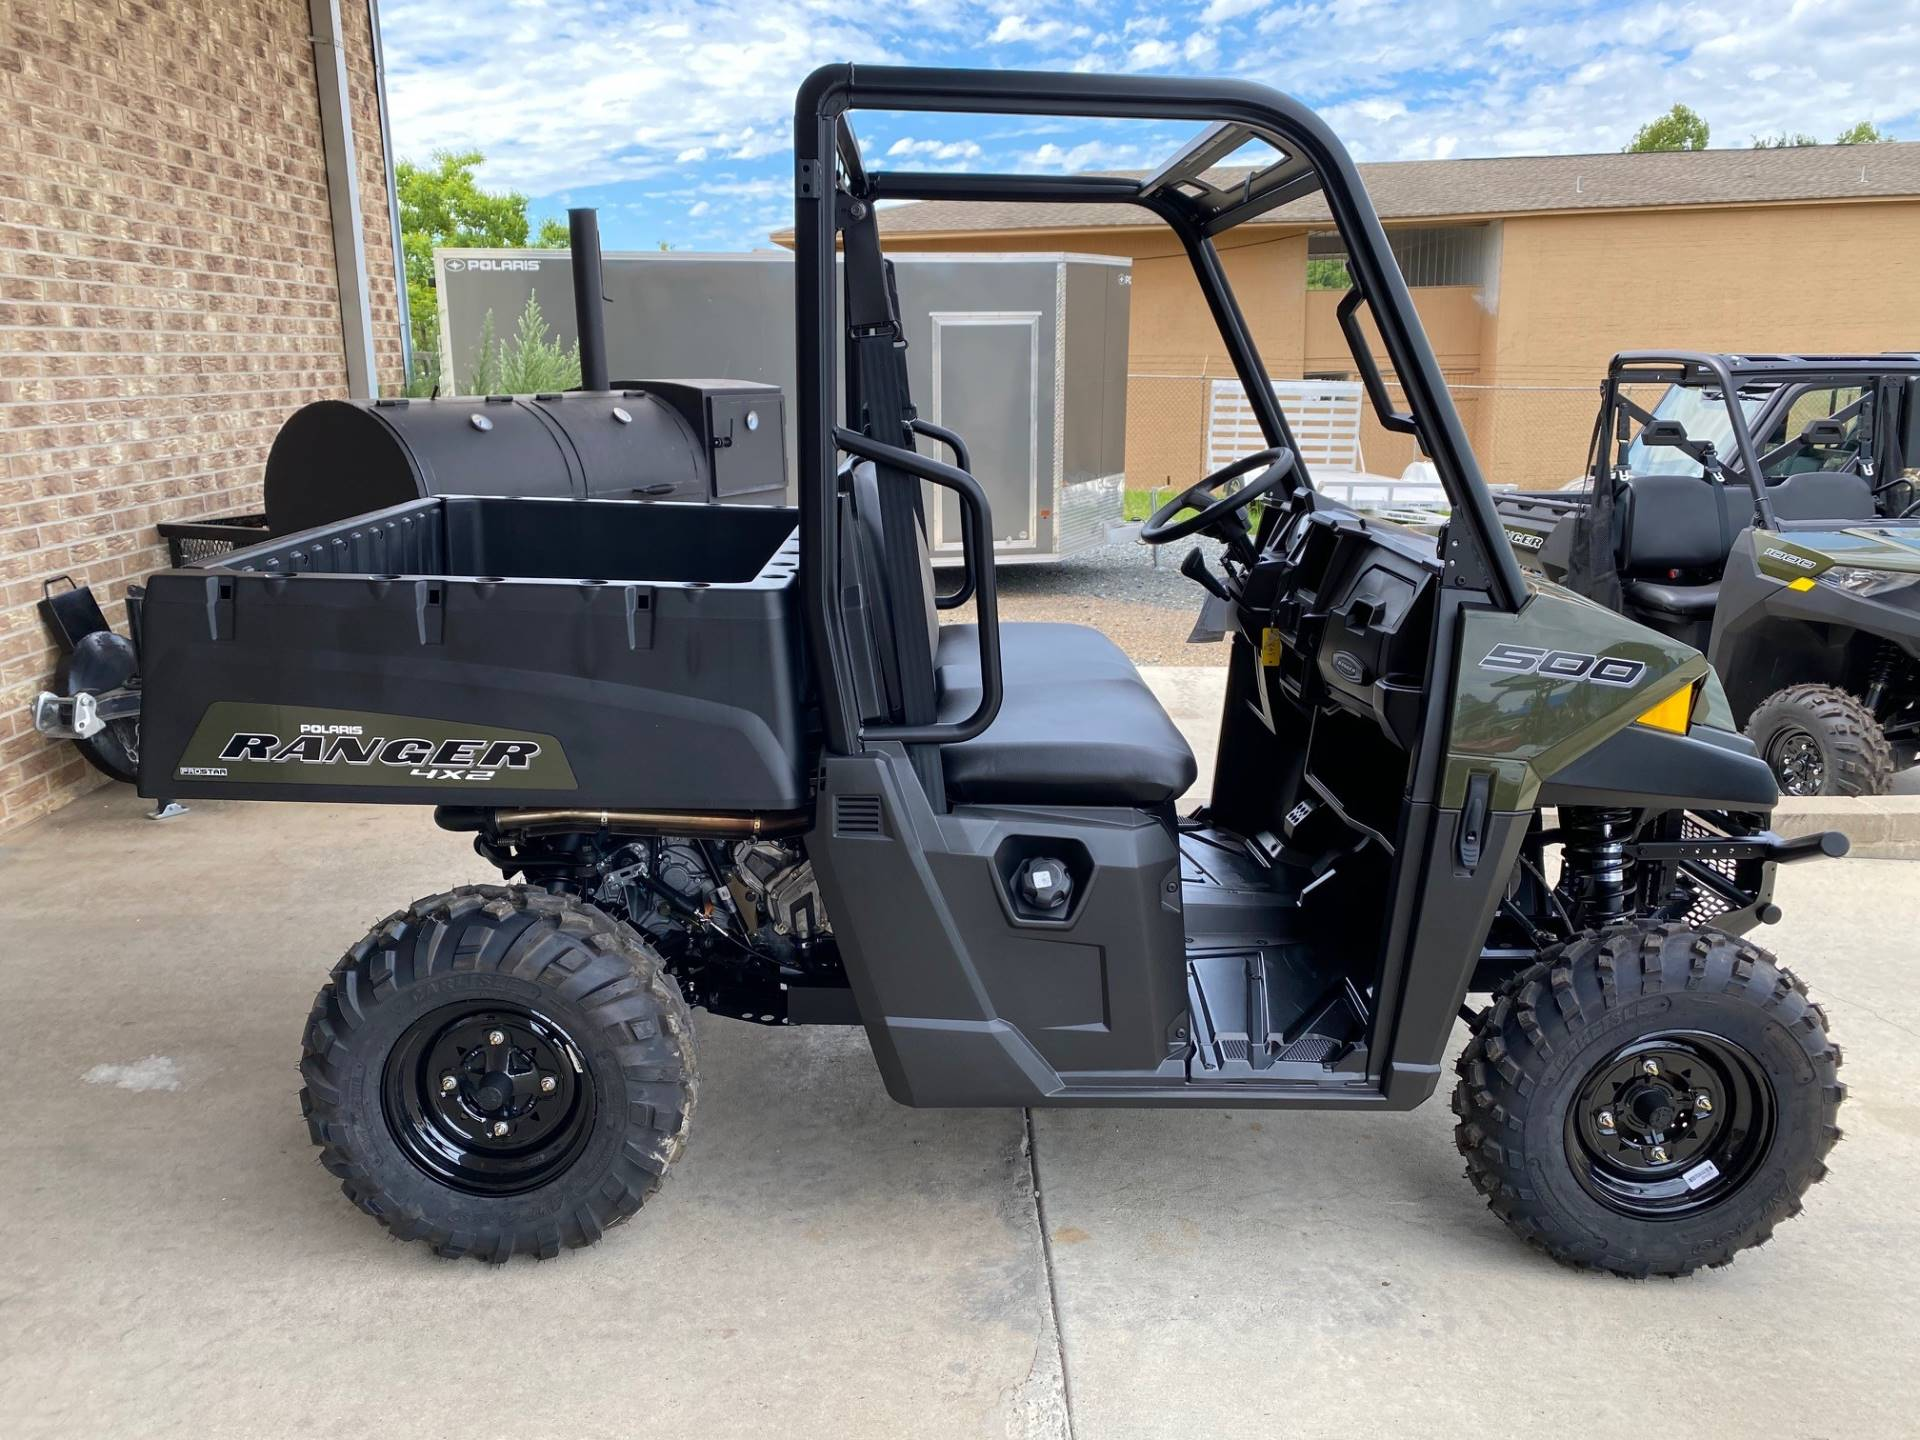 2019 Polaris Ranger 500 4x2 in Marshall, Texas - Photo 3